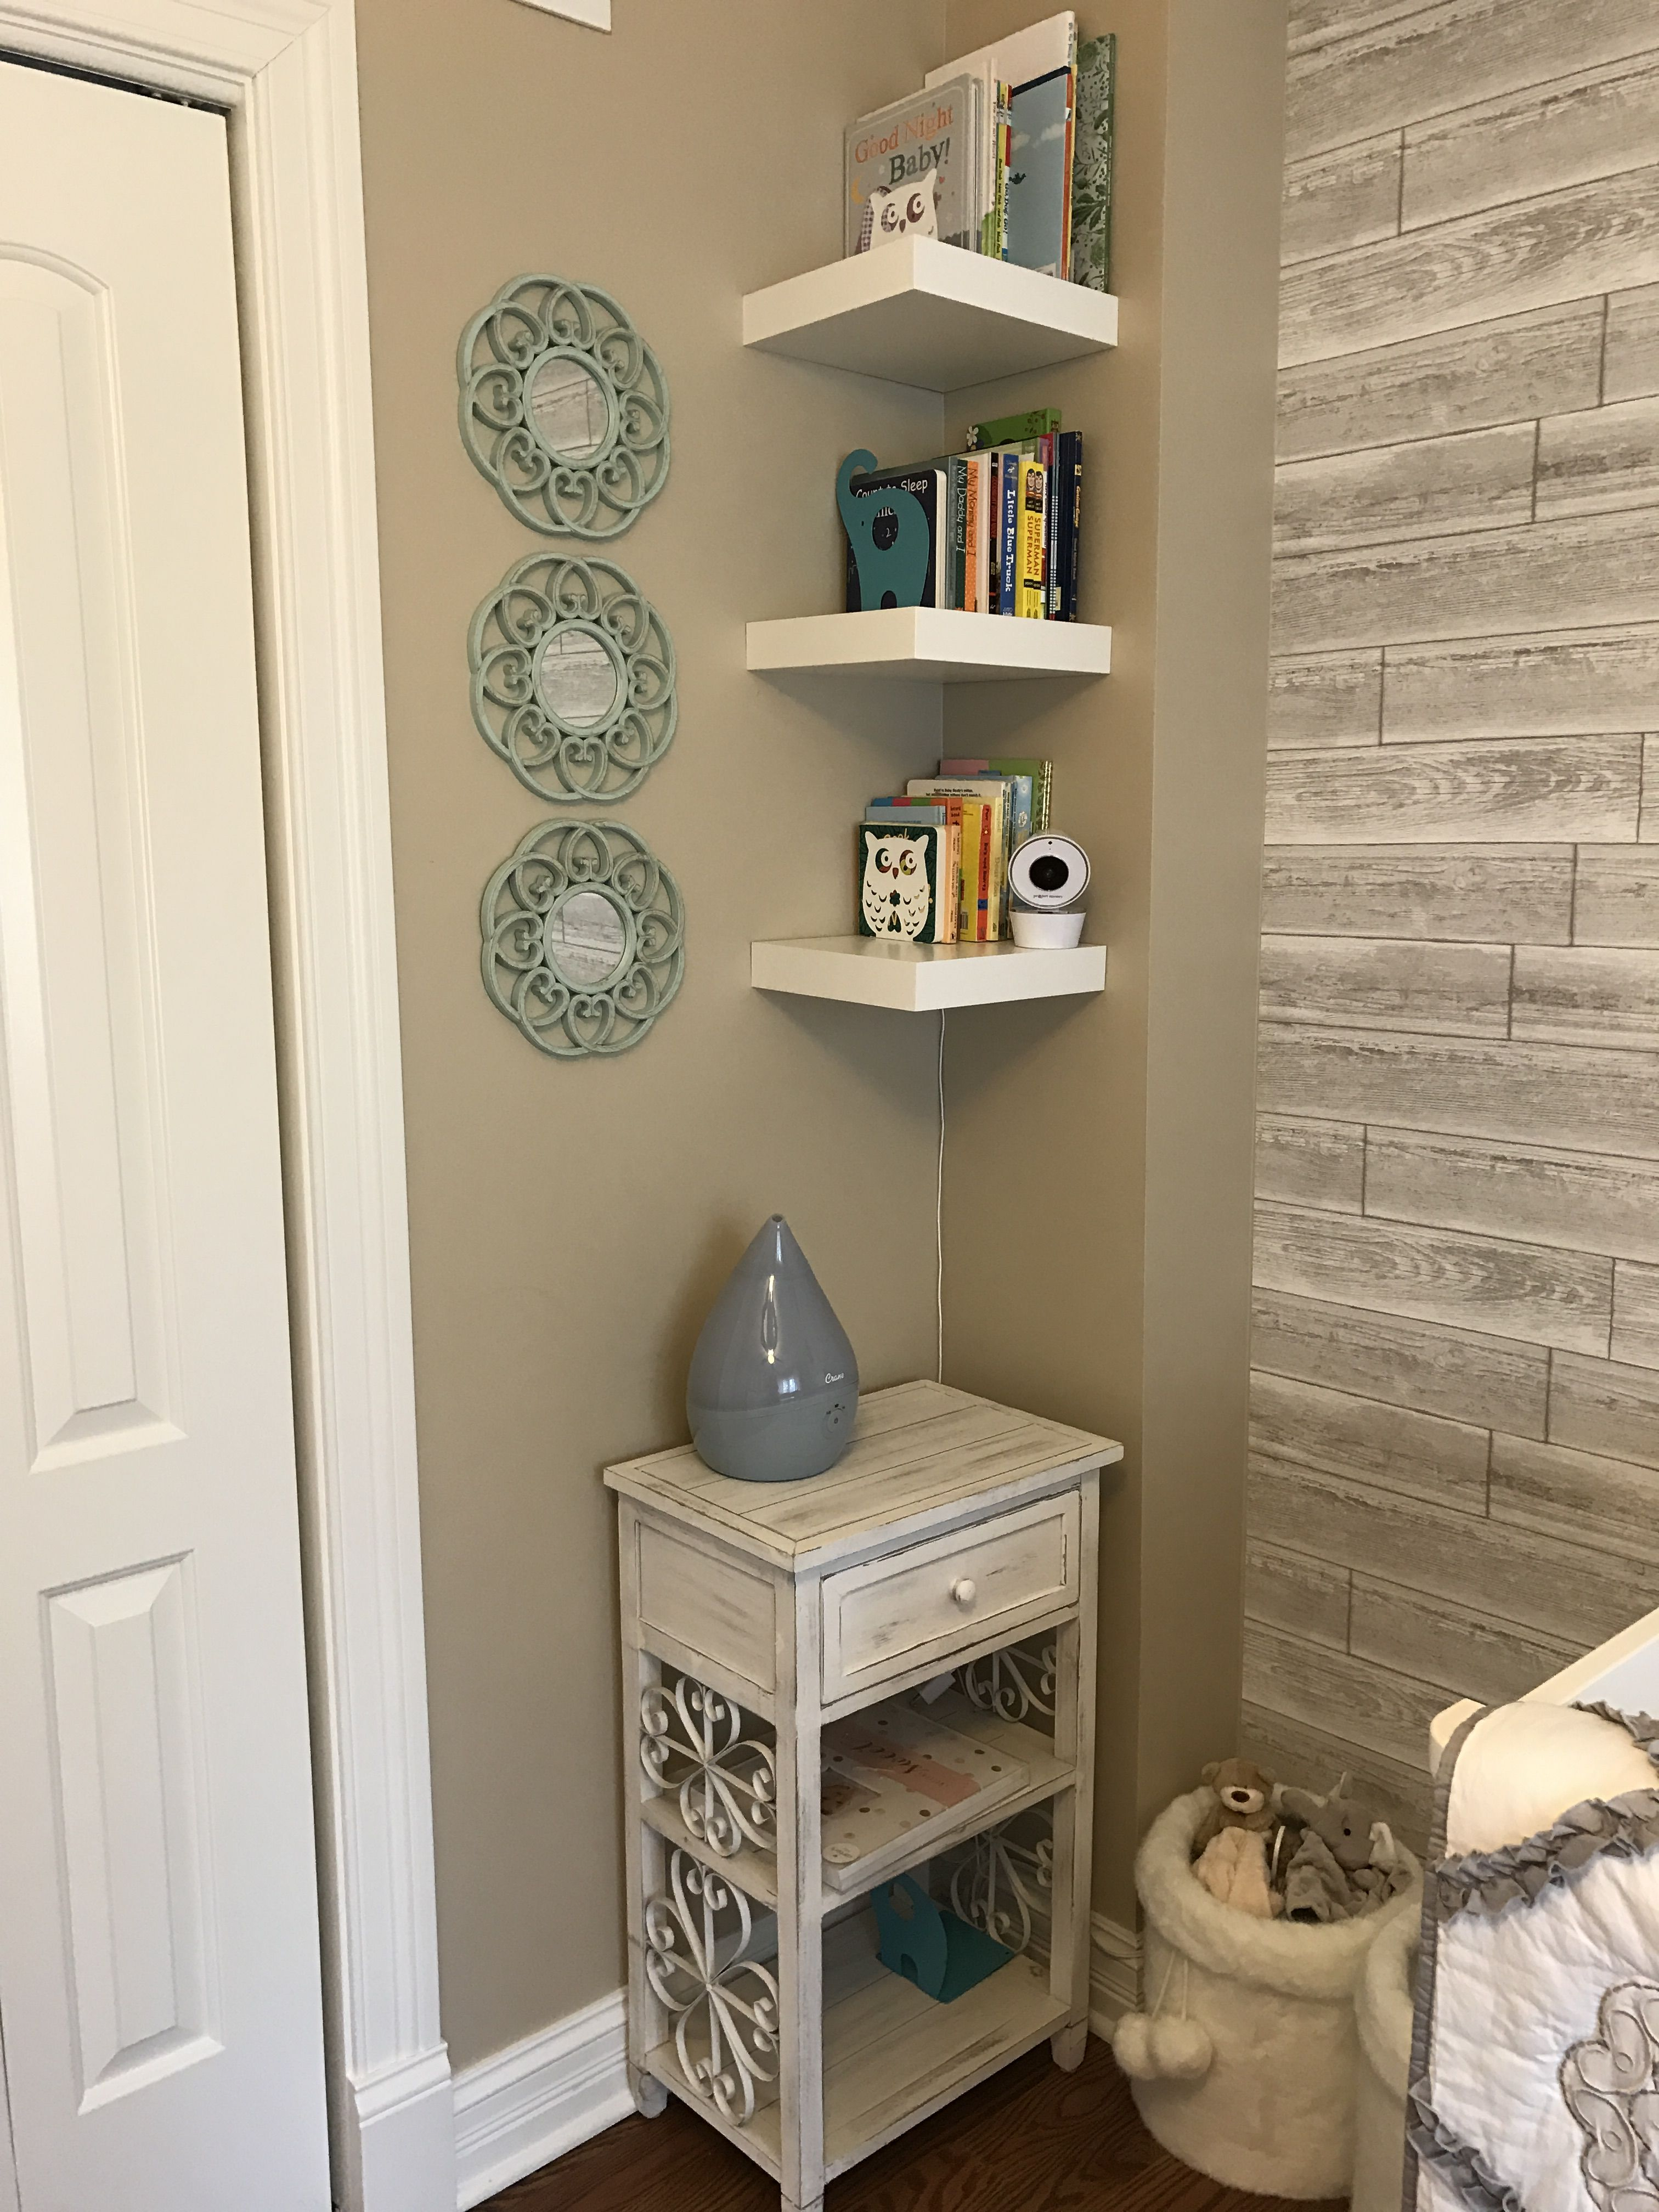 Baby Dahl Nursery Bookshelves From Ikea Accent Mirrors And Night Stand Home Goods